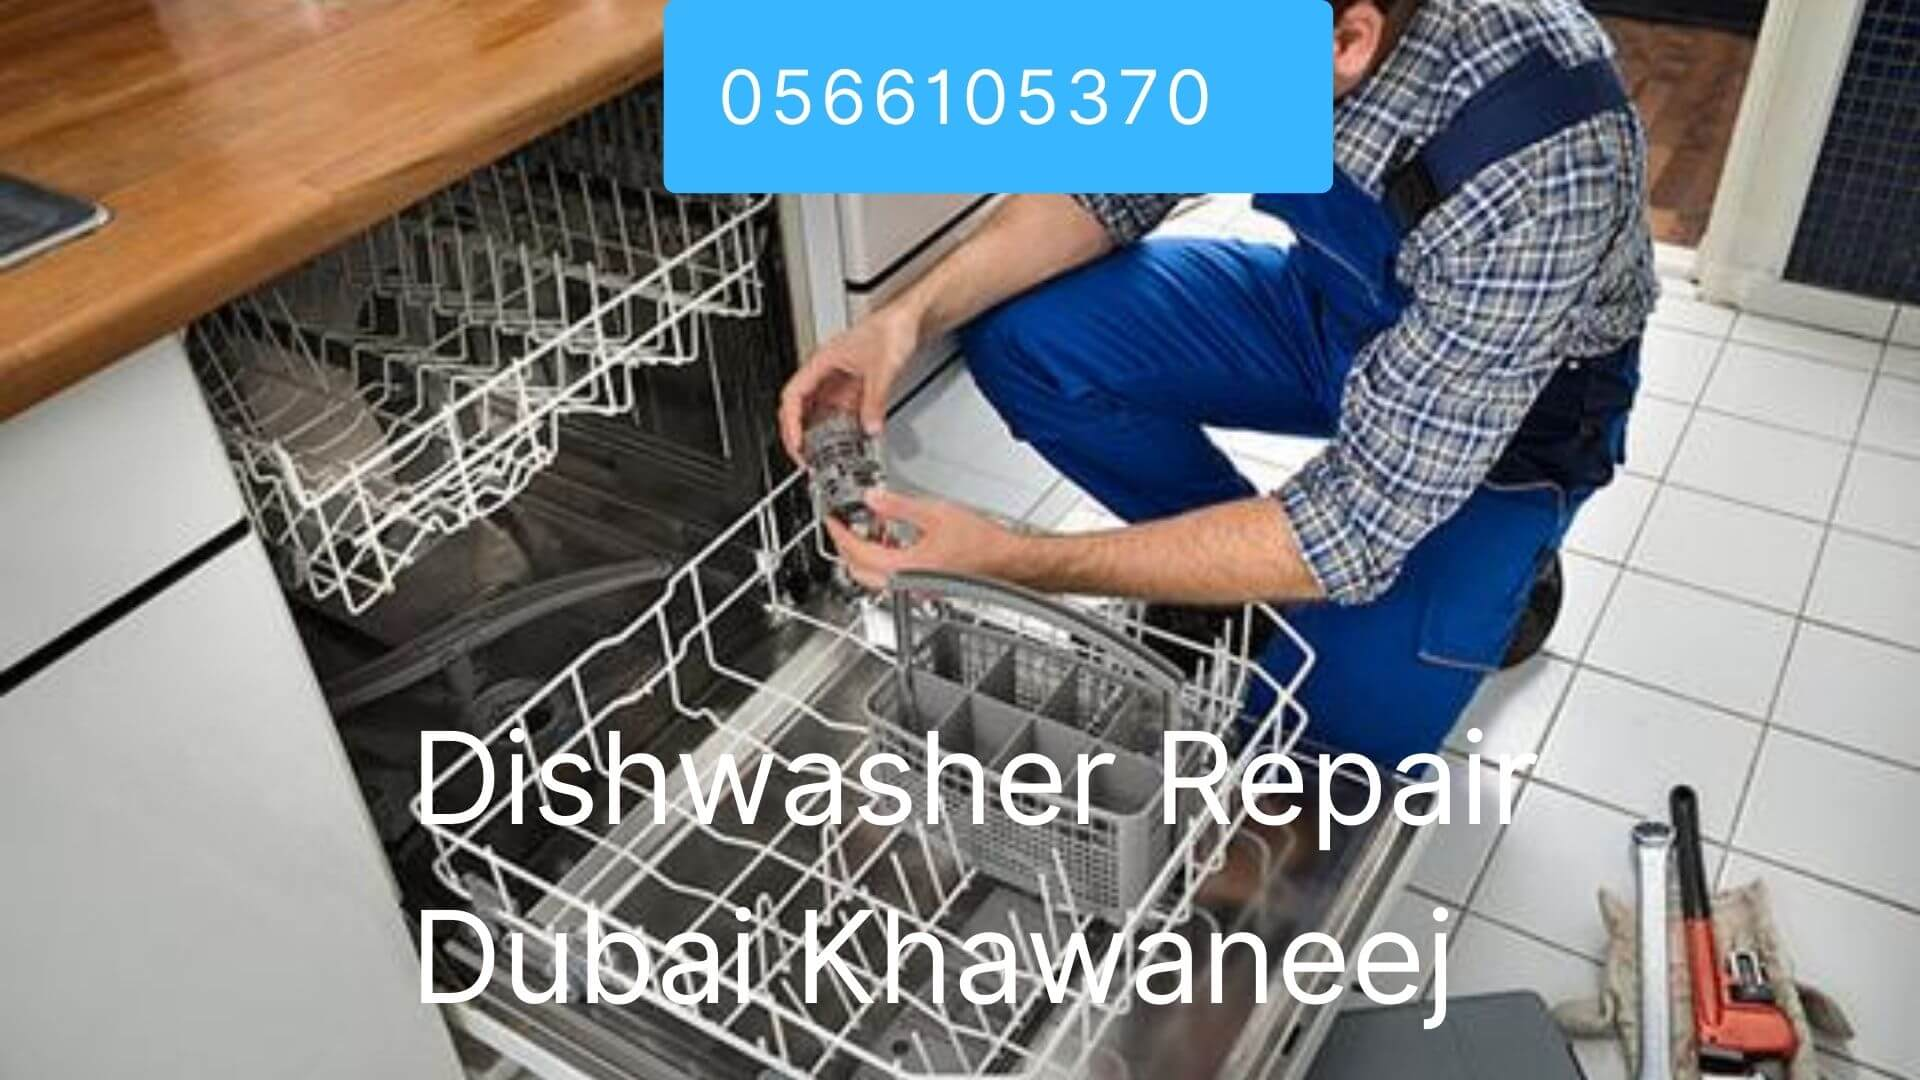 Dishwasher machine repair Dubai khawaneej